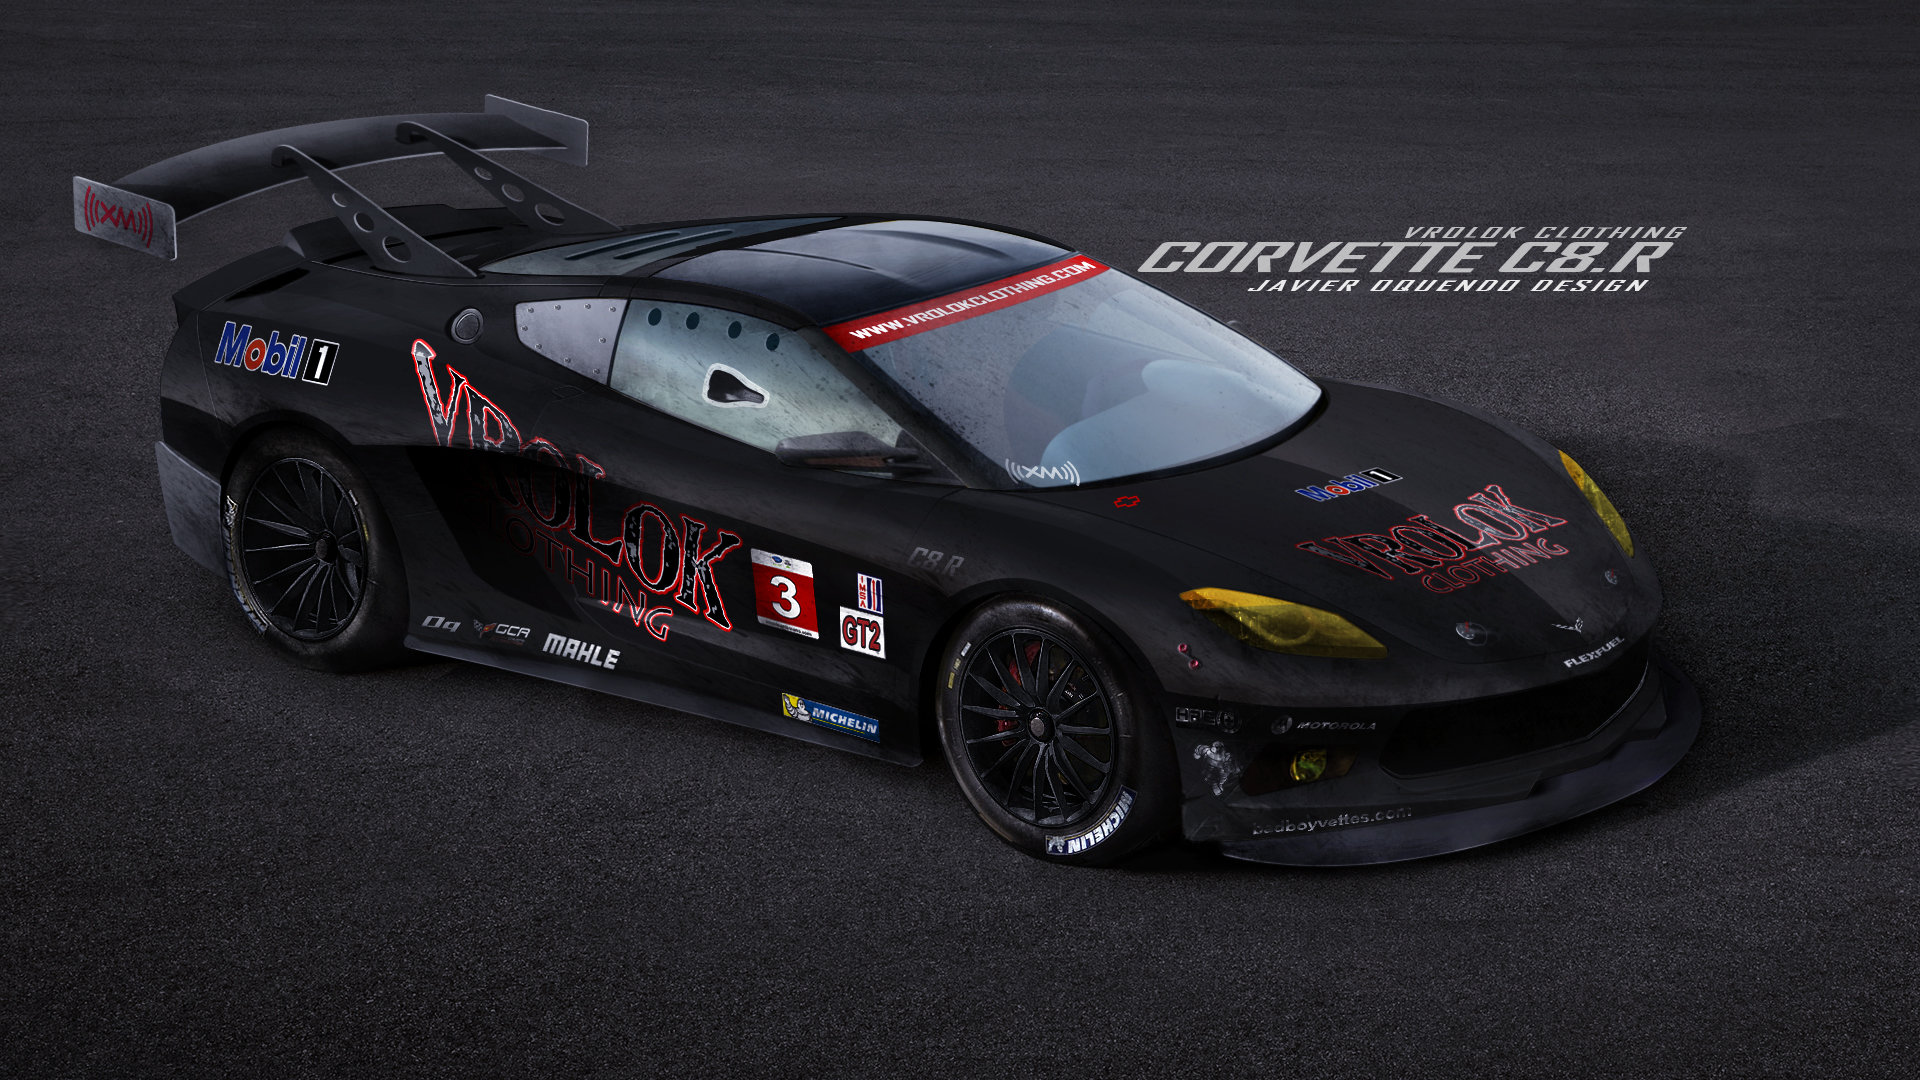 Mid Engine Corvette >> Javier Oquendo - Vrolok Clothing Corvette C8.R